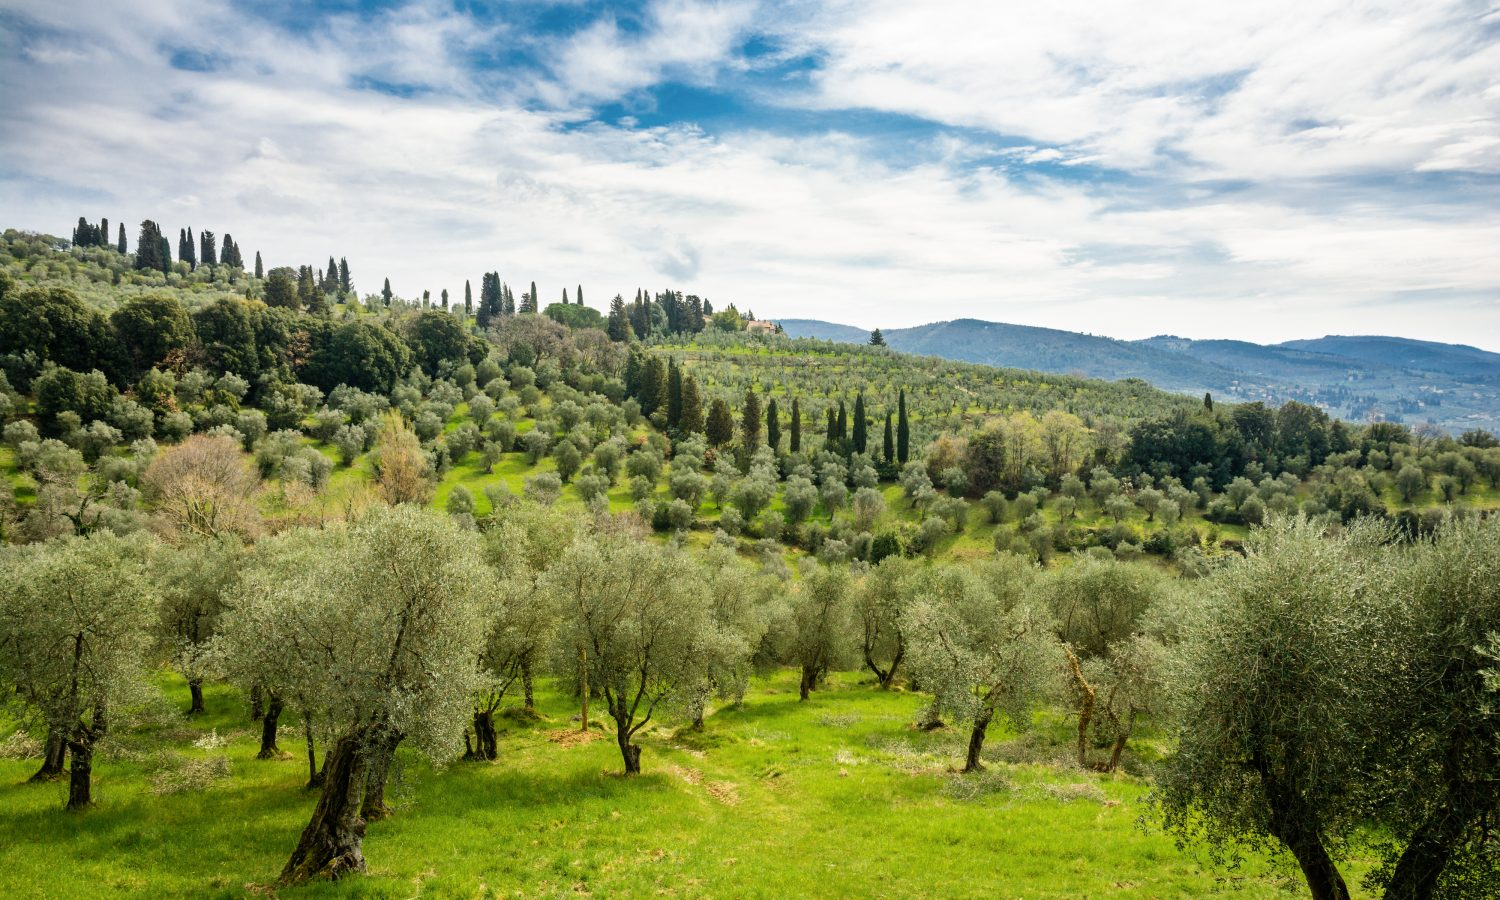 A field Olive Oil Trees